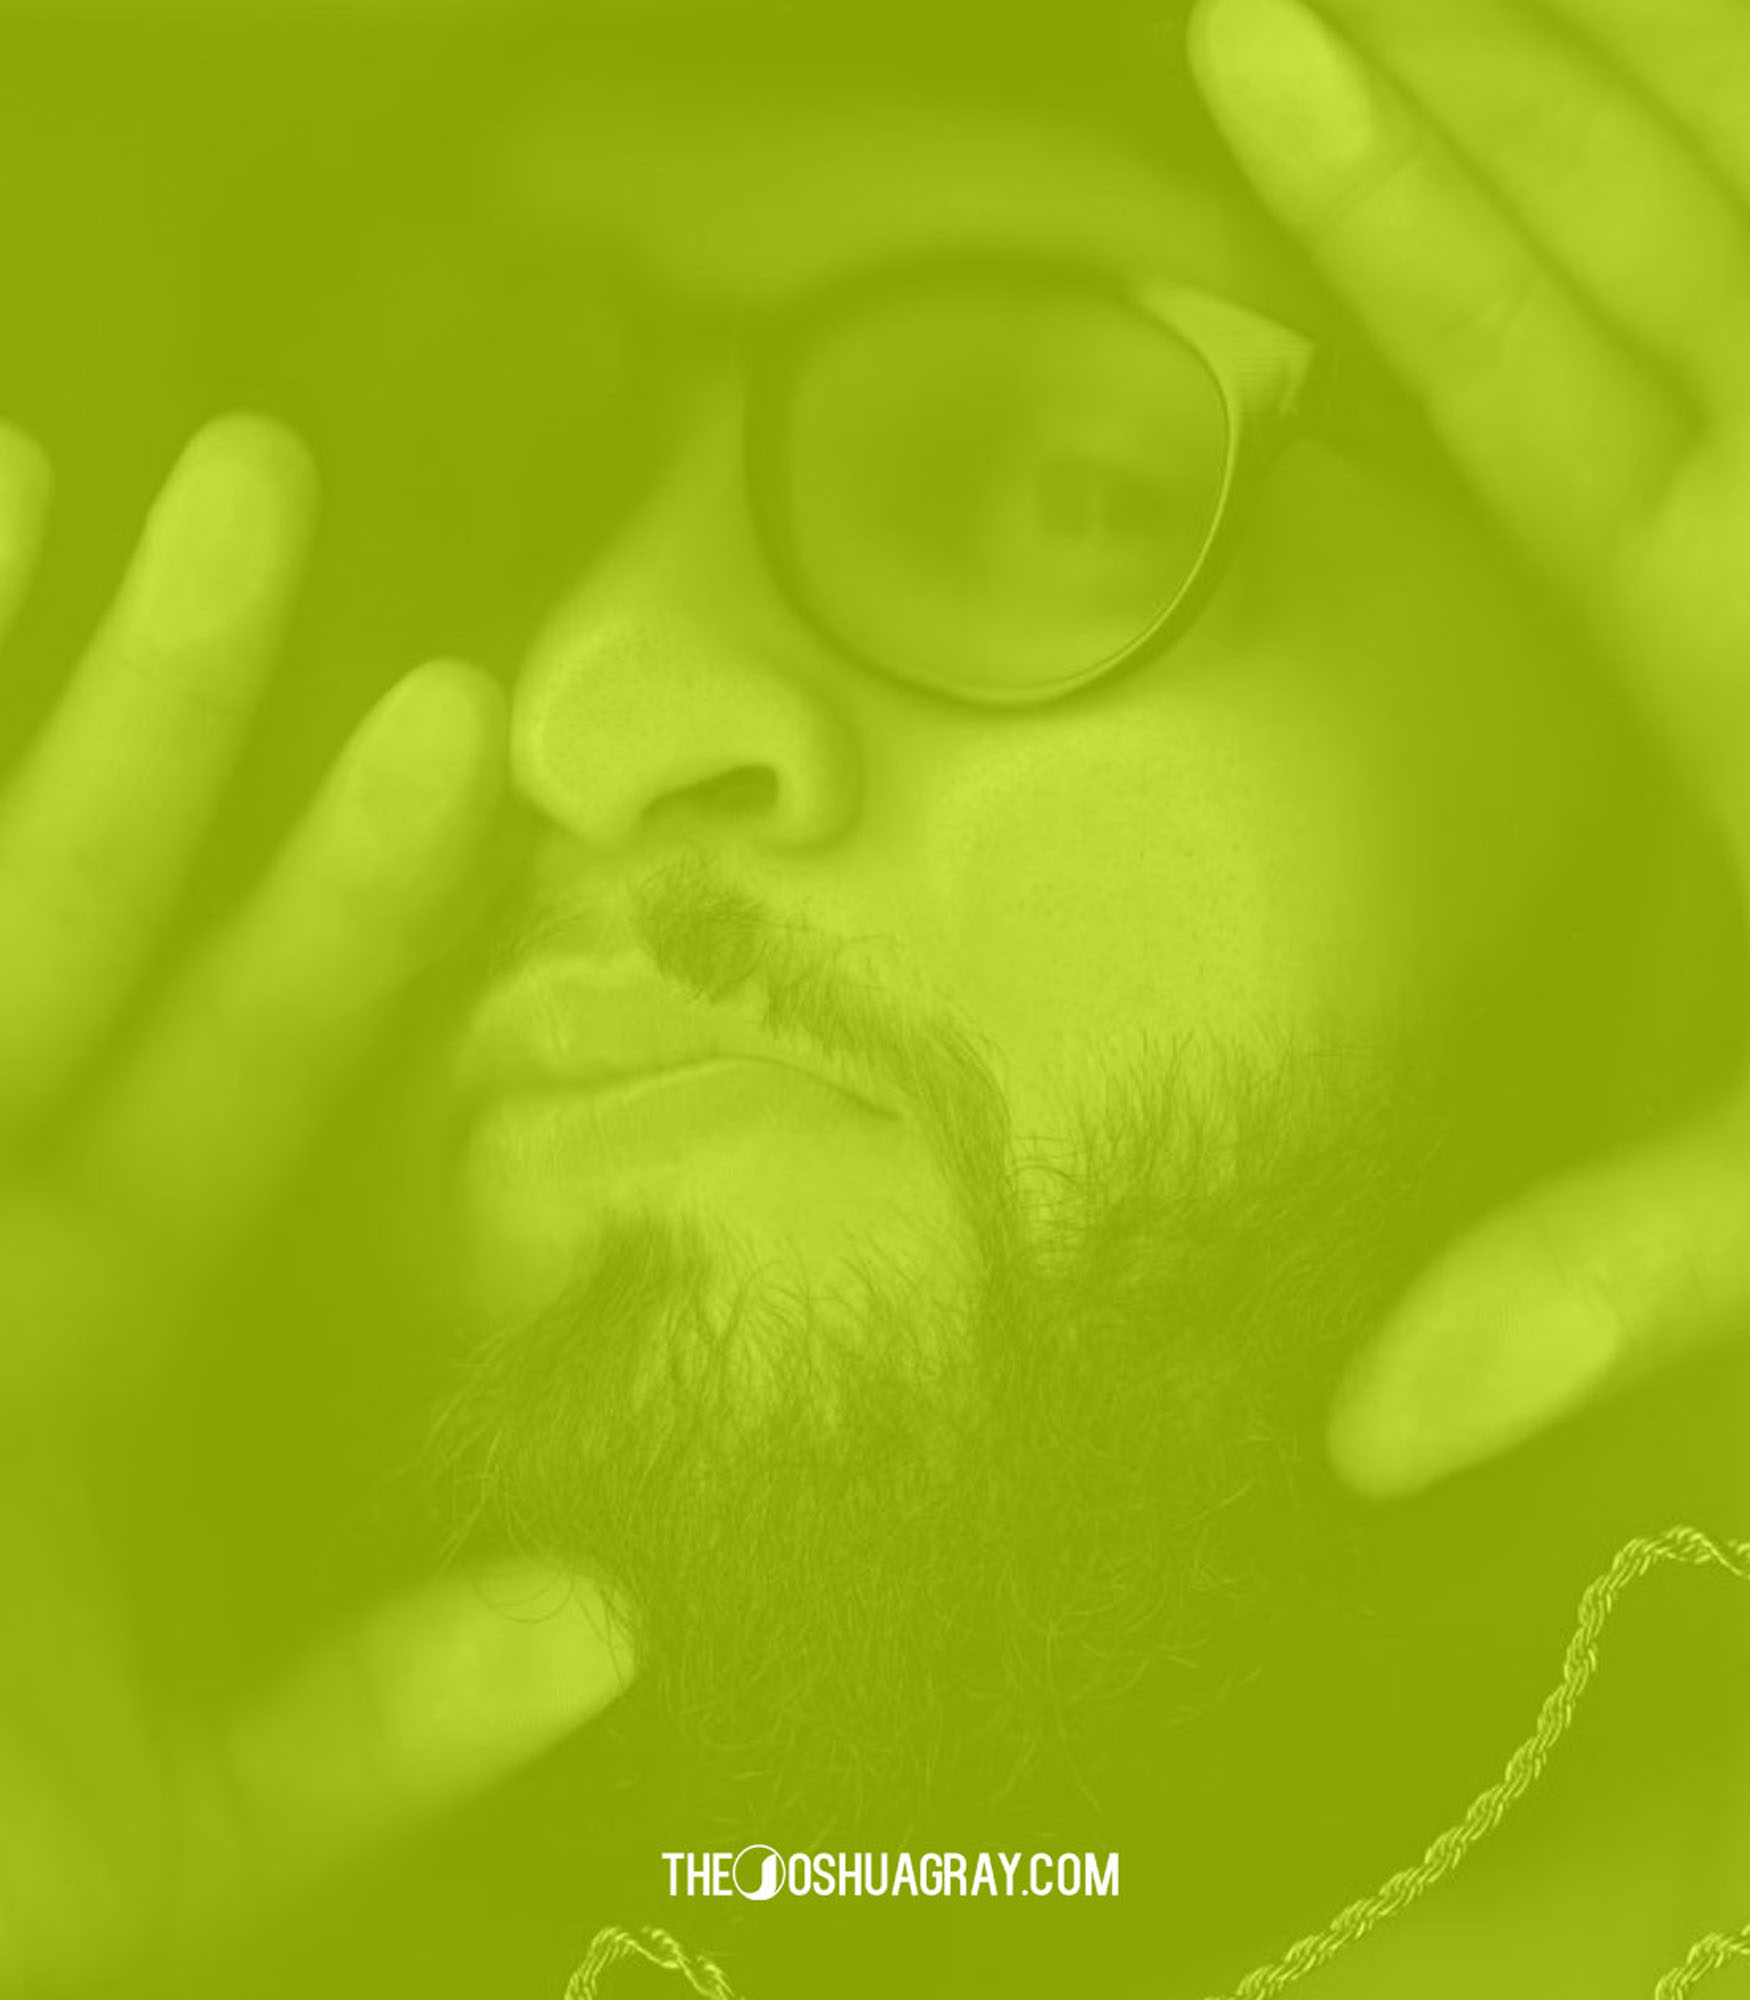 #DONEGRAYT : Andy Mineo #Uncomfortable Album Rollout